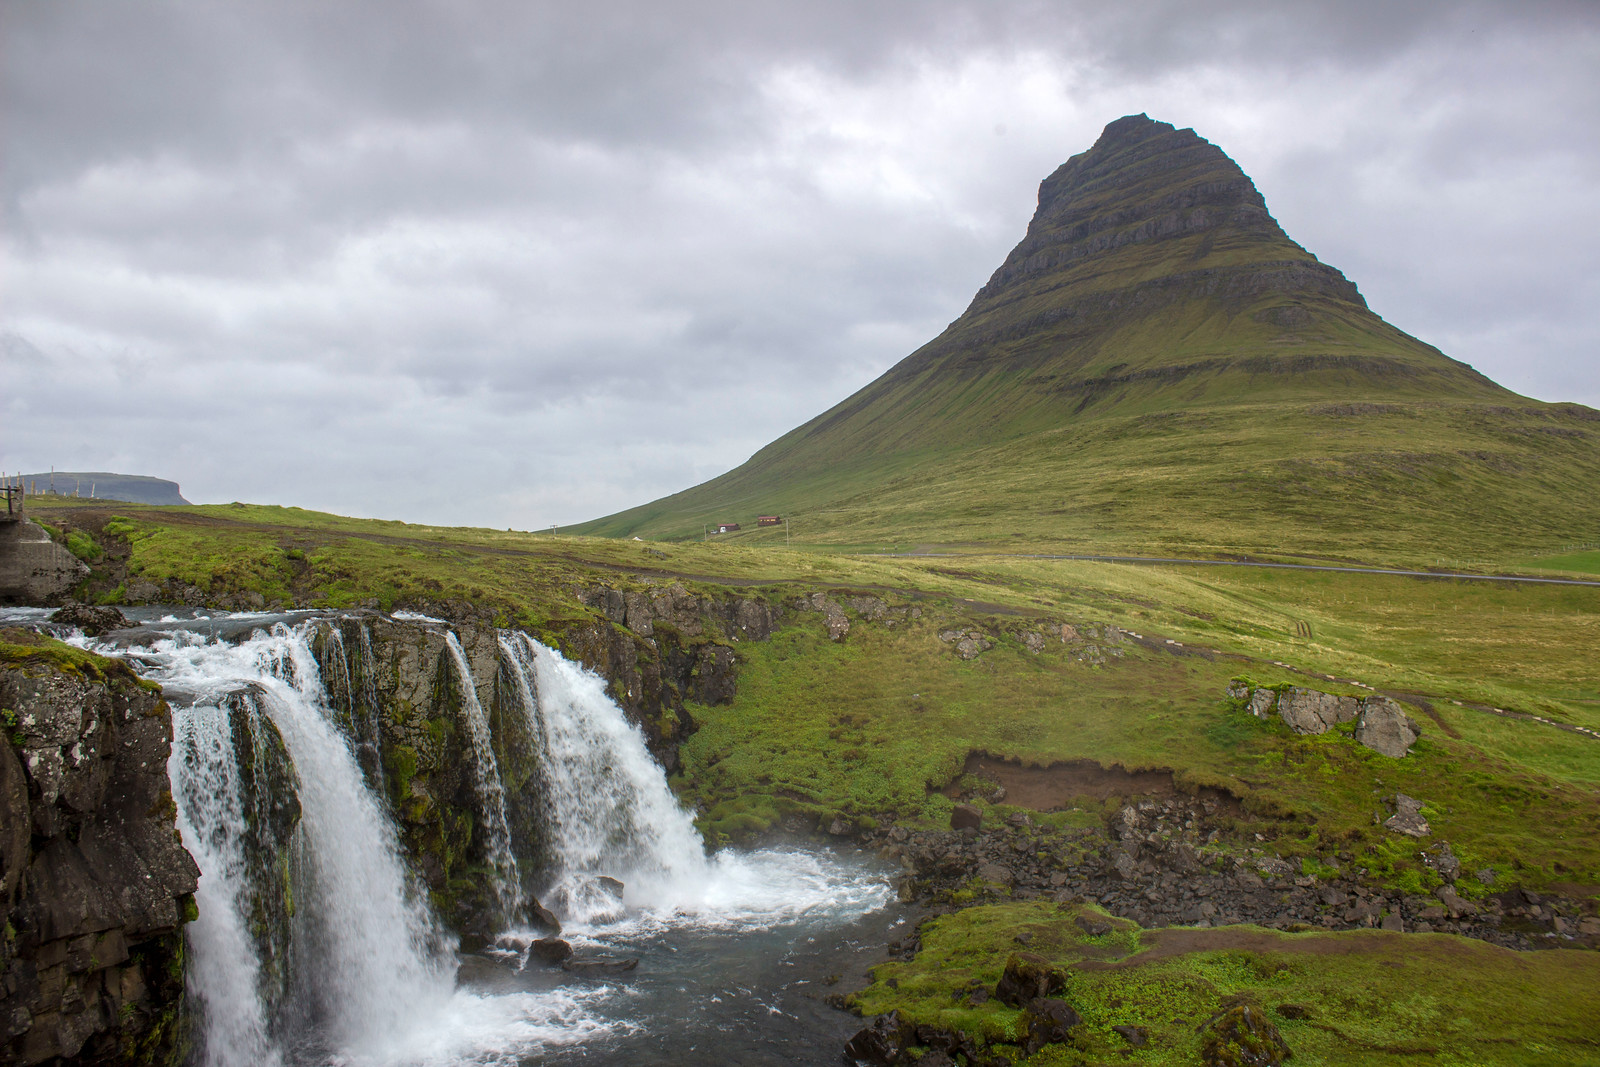 Kirkjufell - Most photographed mountain in Iceland